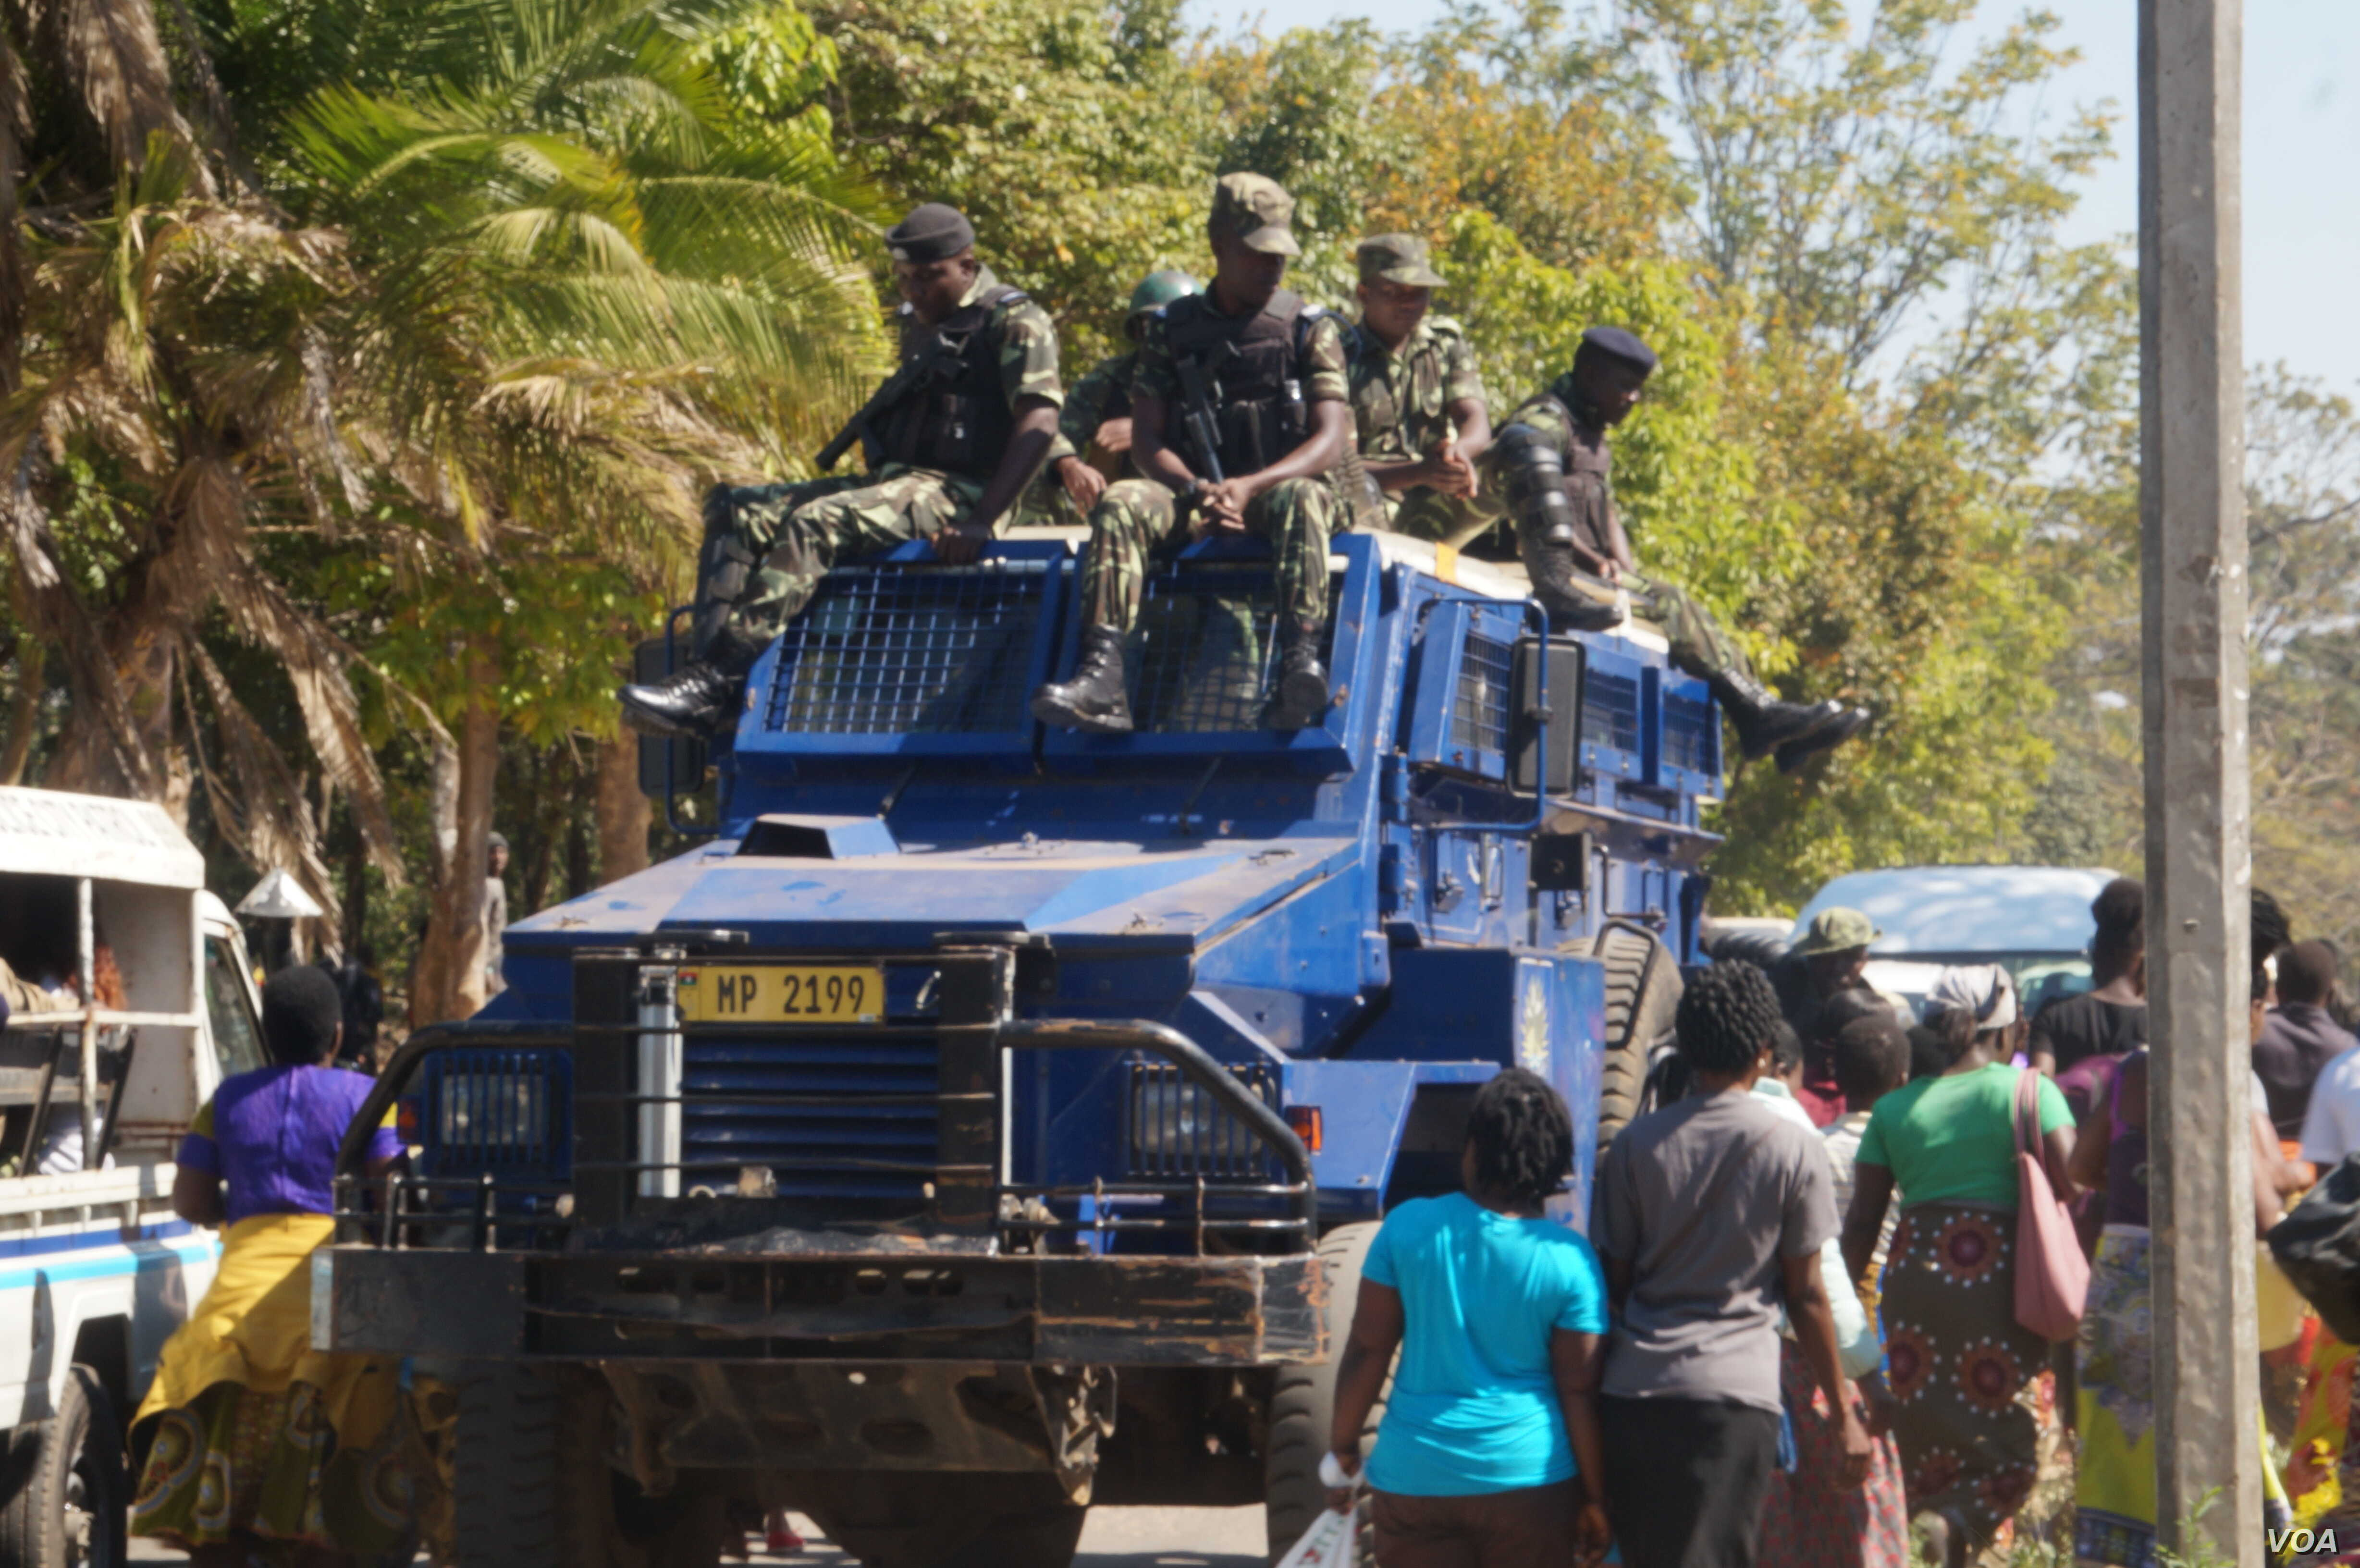 Malawi police provide security as women march in Blantyre, July 10, 2019. (Lameck Masina)